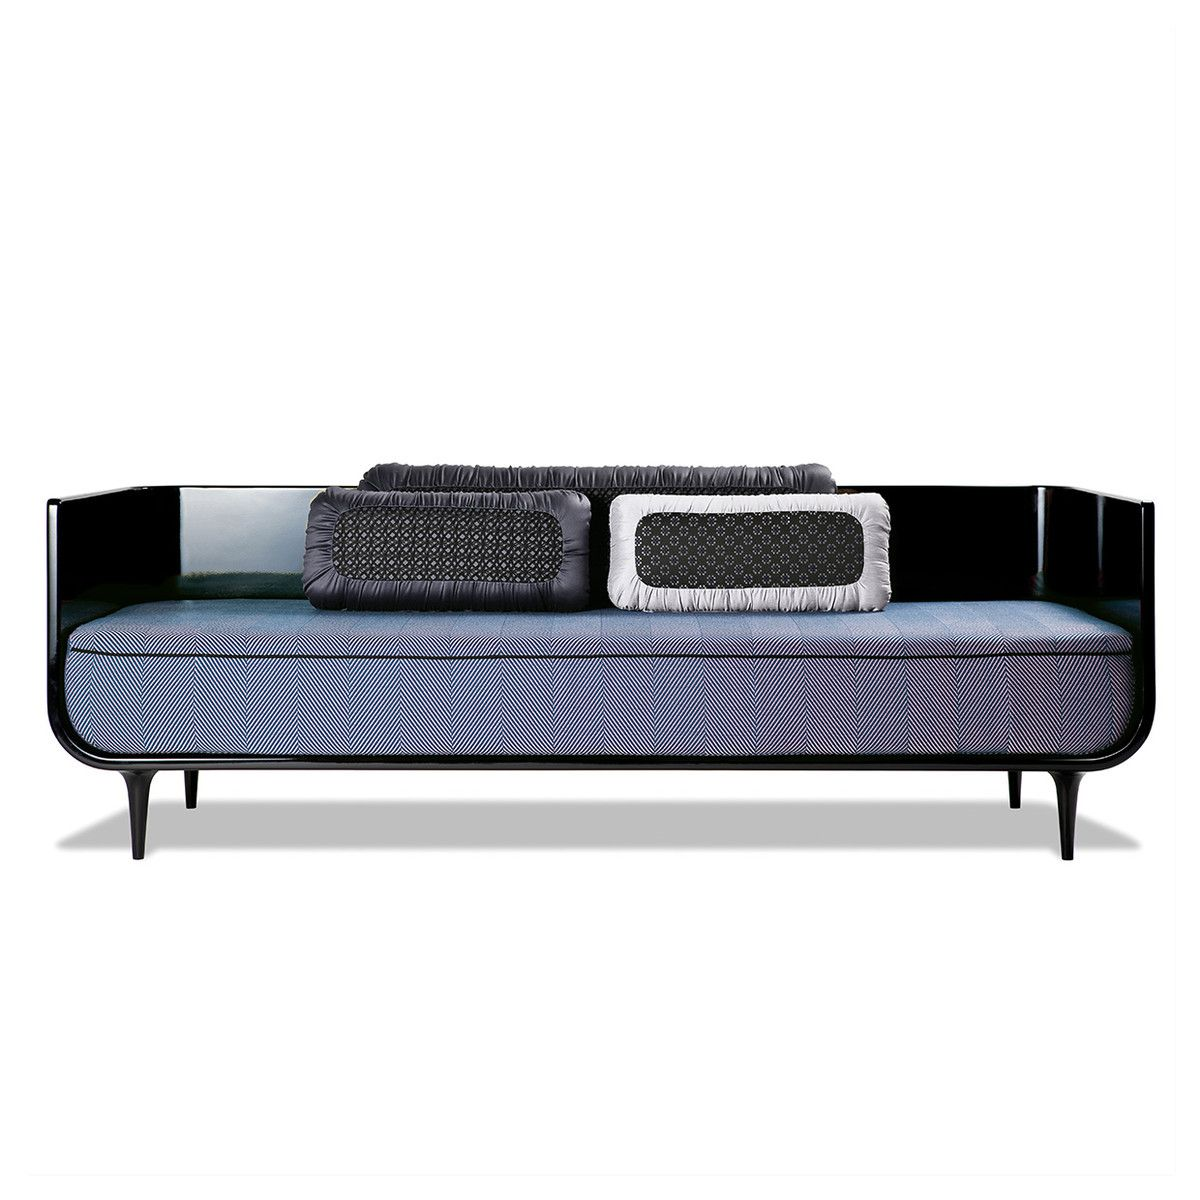 The Absolutely Stunning Sofa Phonique Fabcom Furniture